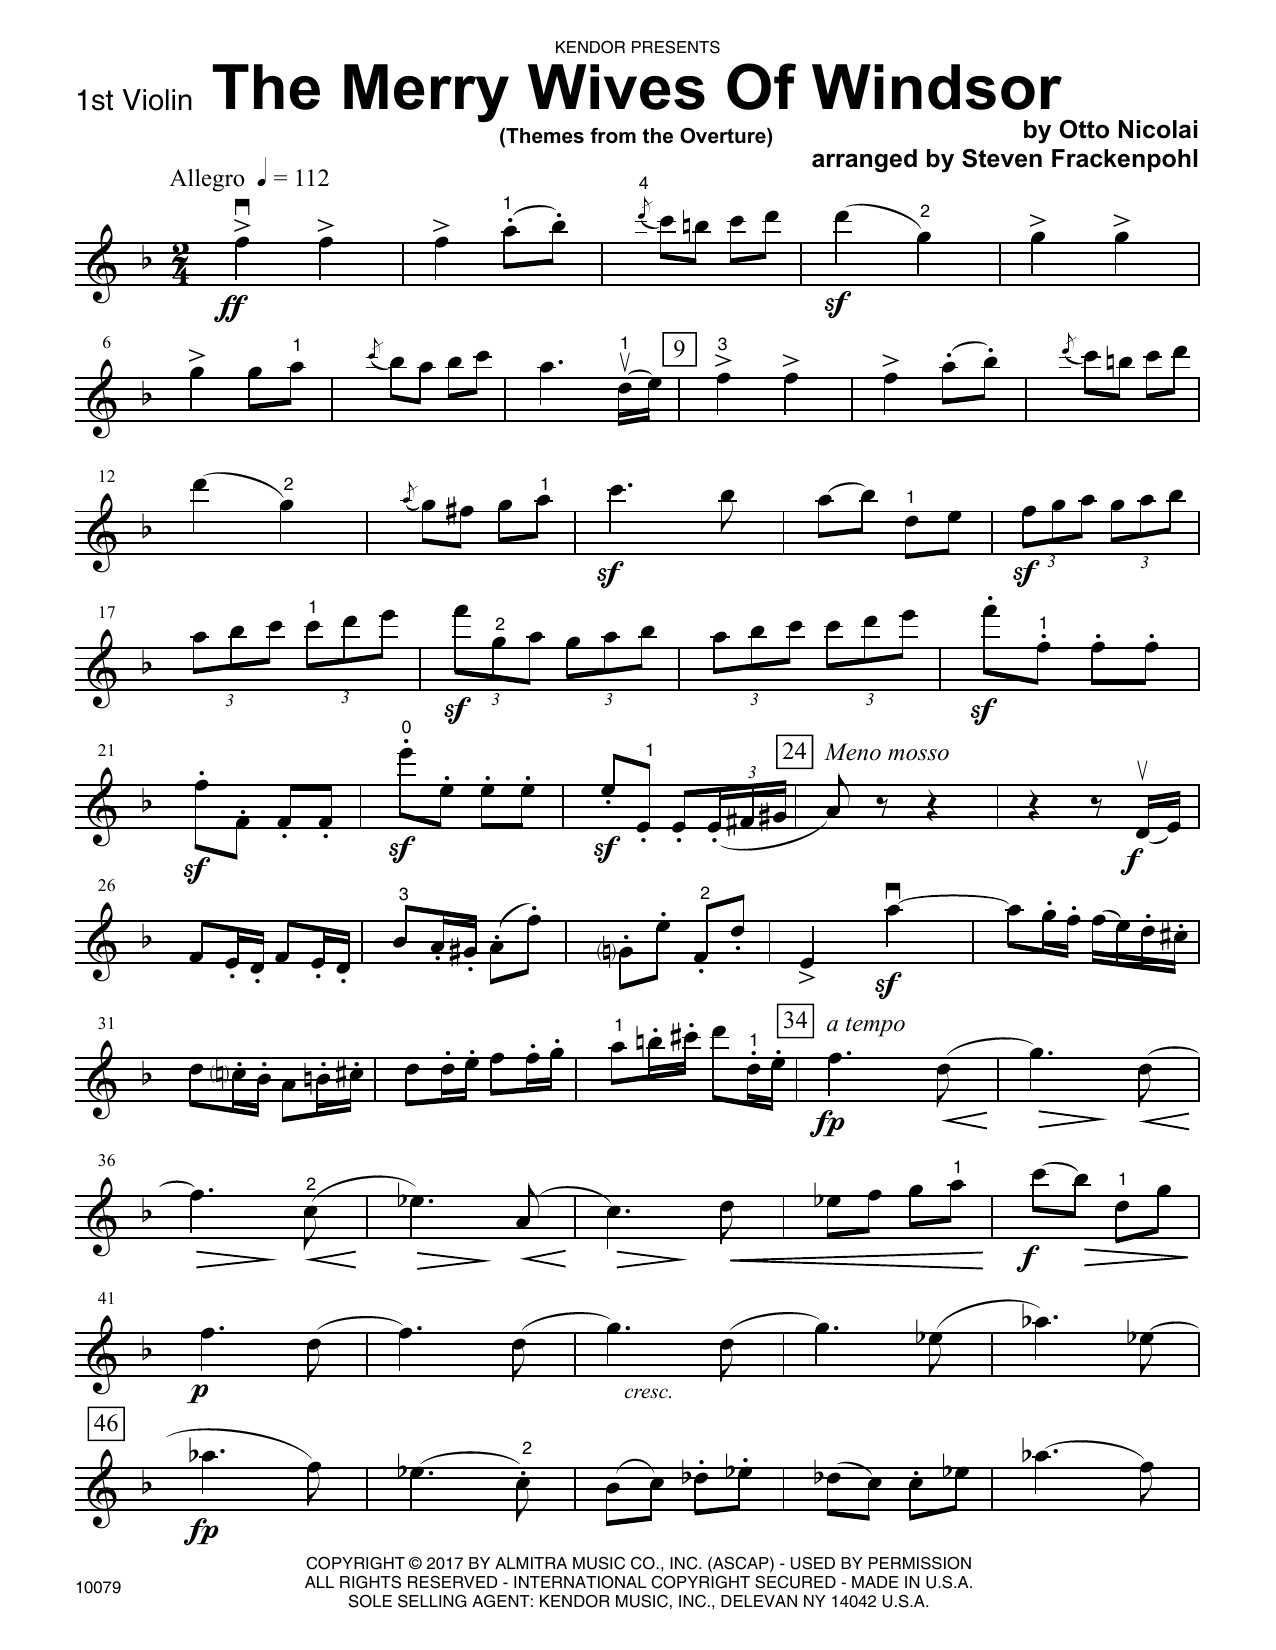 Steven Frackenpohl The Merry Wives Of Windsor (Themes From The Overture) - 1st Violin sheet music notes and chords. Download Printable PDF.